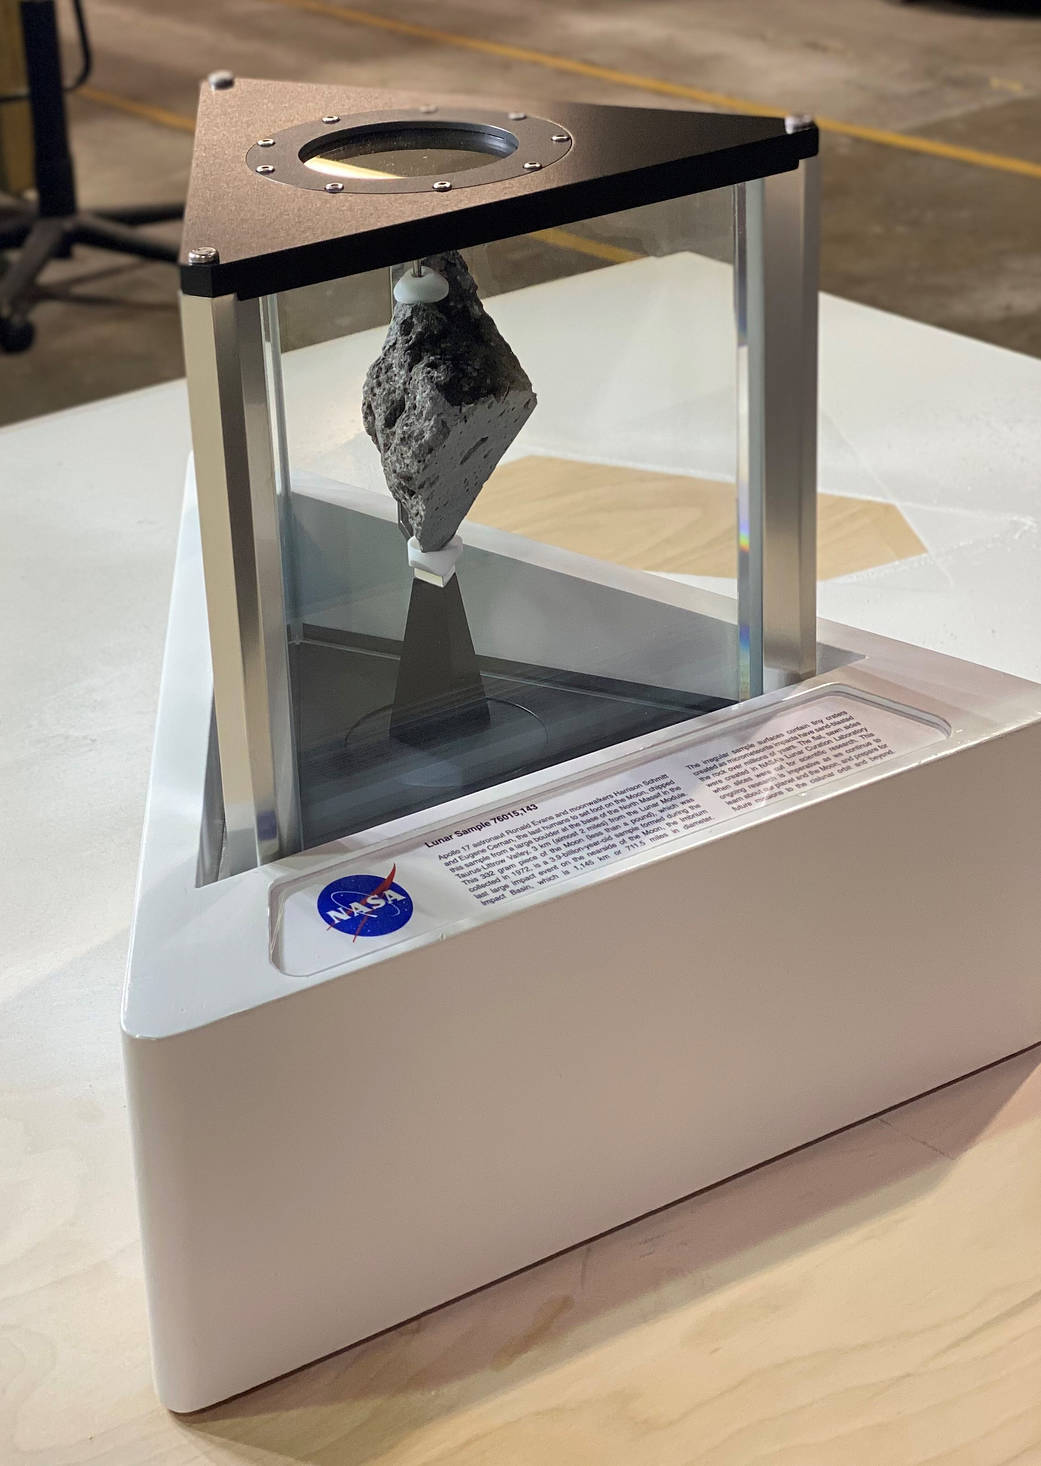 Moon rock on display in the Oval Office beginning Jan. 20, 2021.